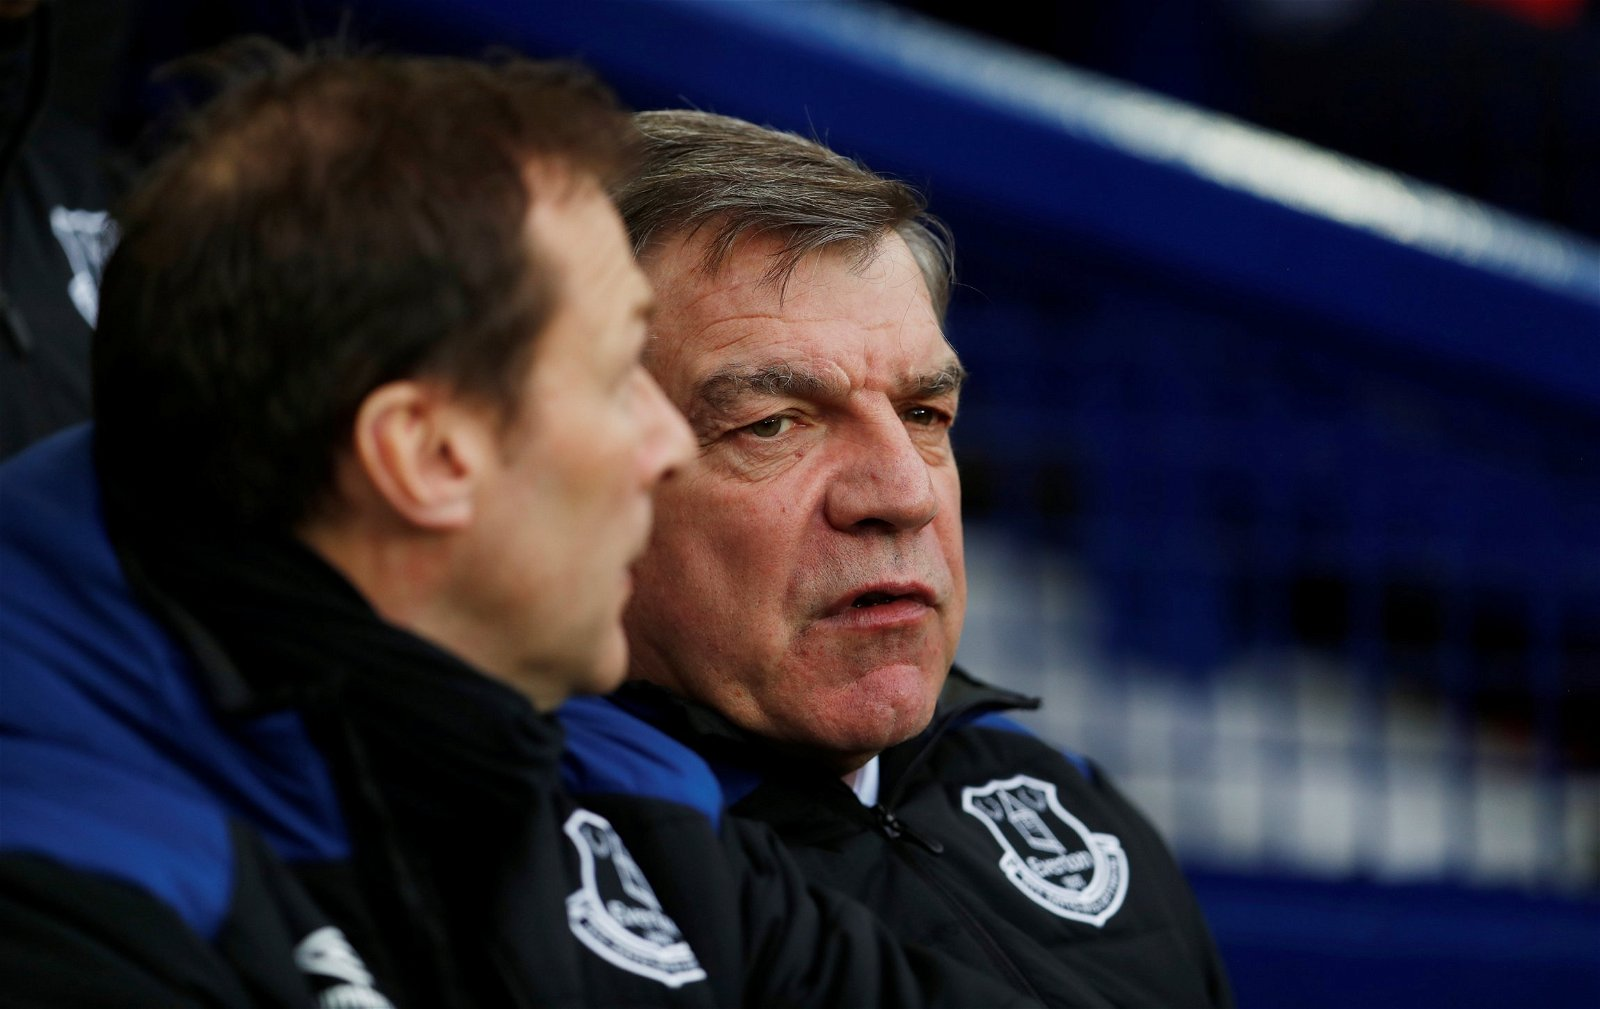 Sam Allardyce's main failure is cause for serious concern